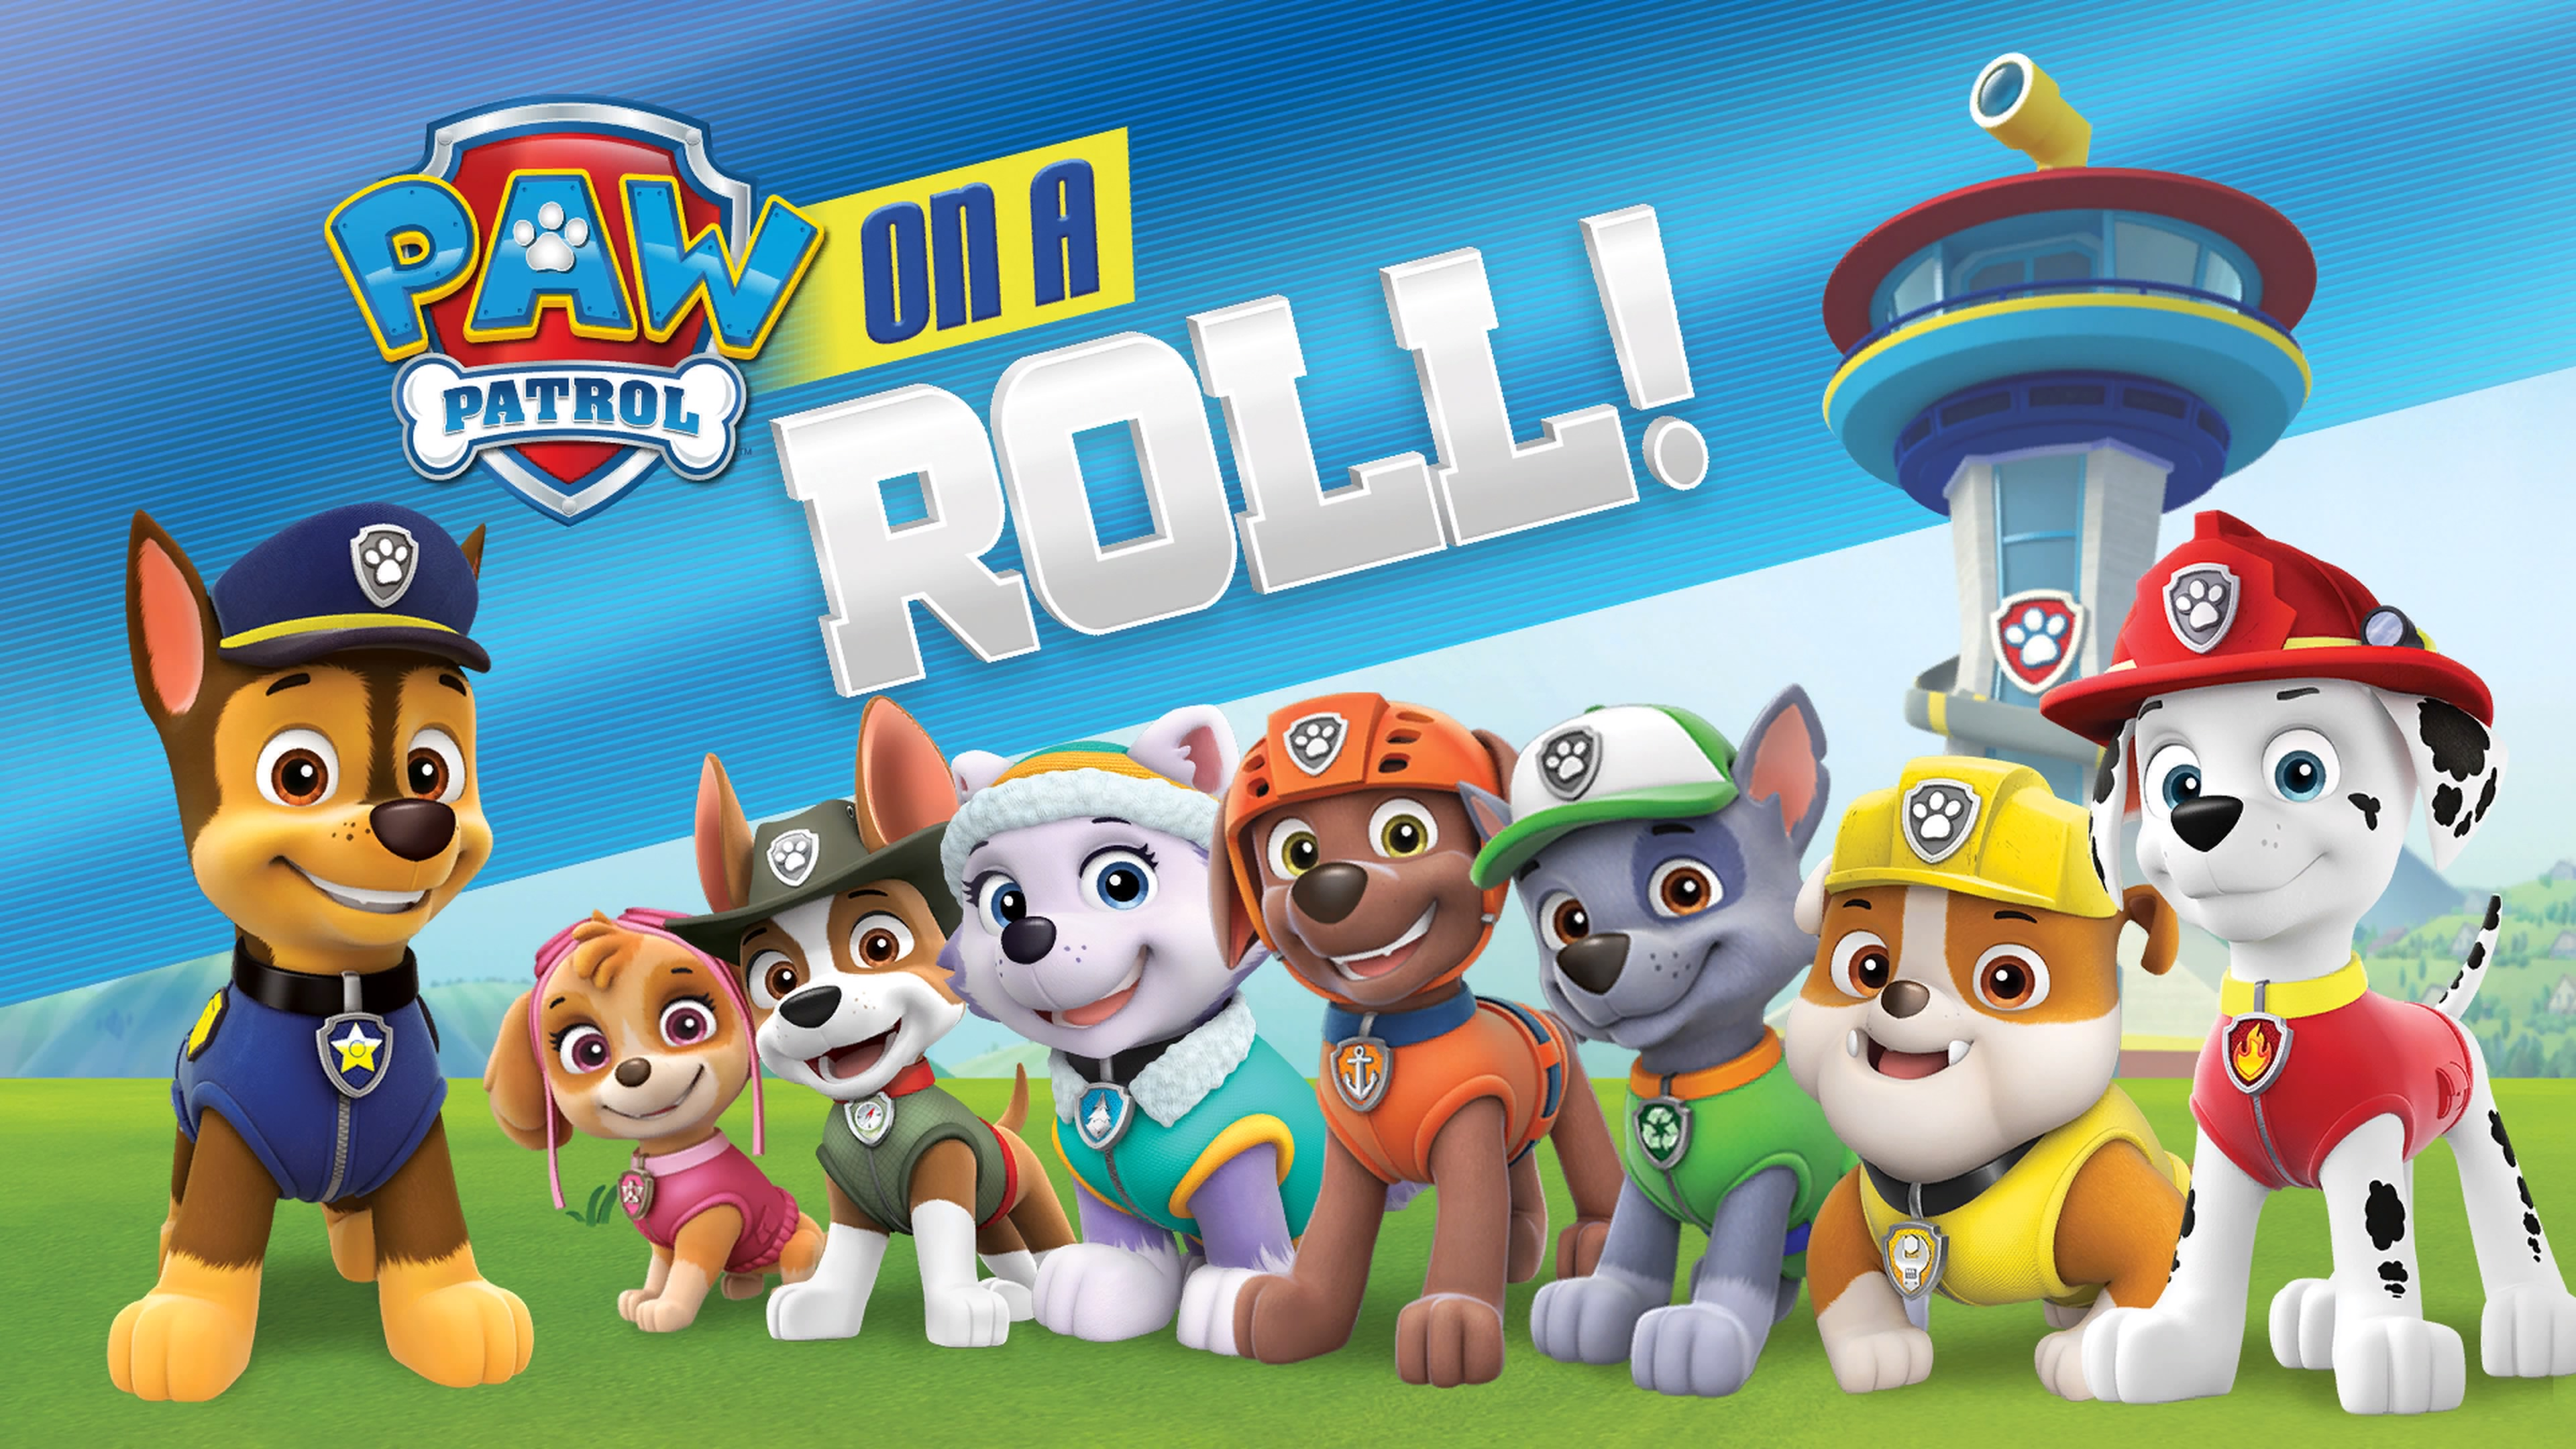 Paw Patrol: On a Roll Review – The Kiddos Will Love It